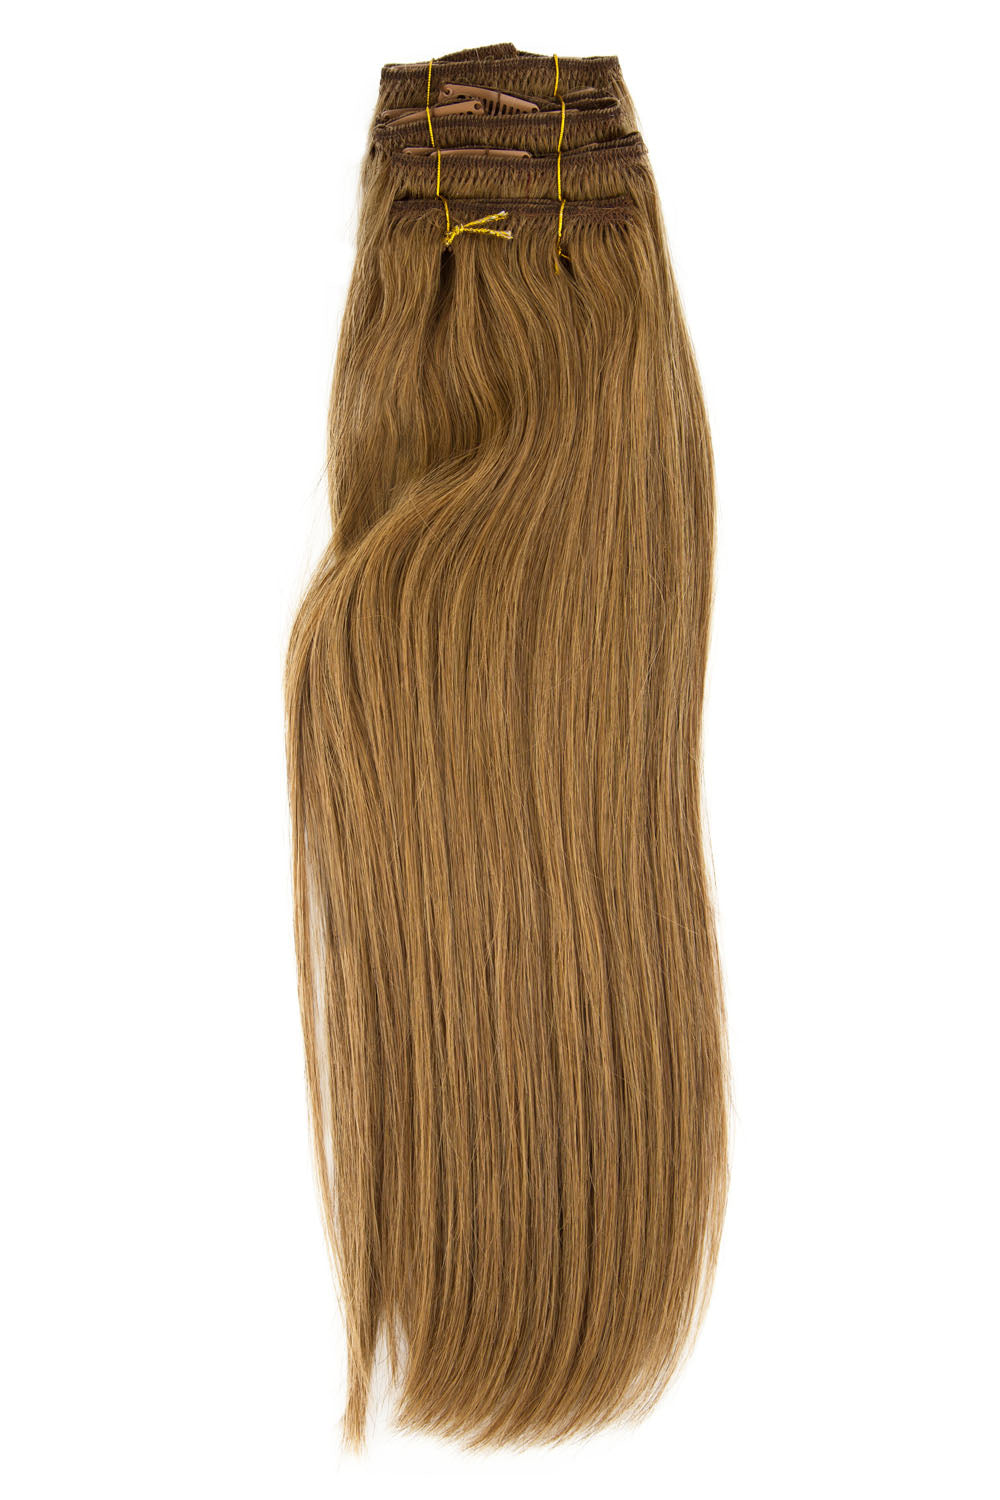 #30 (GINGER SPICE) 7 PIECE CLIP-IN